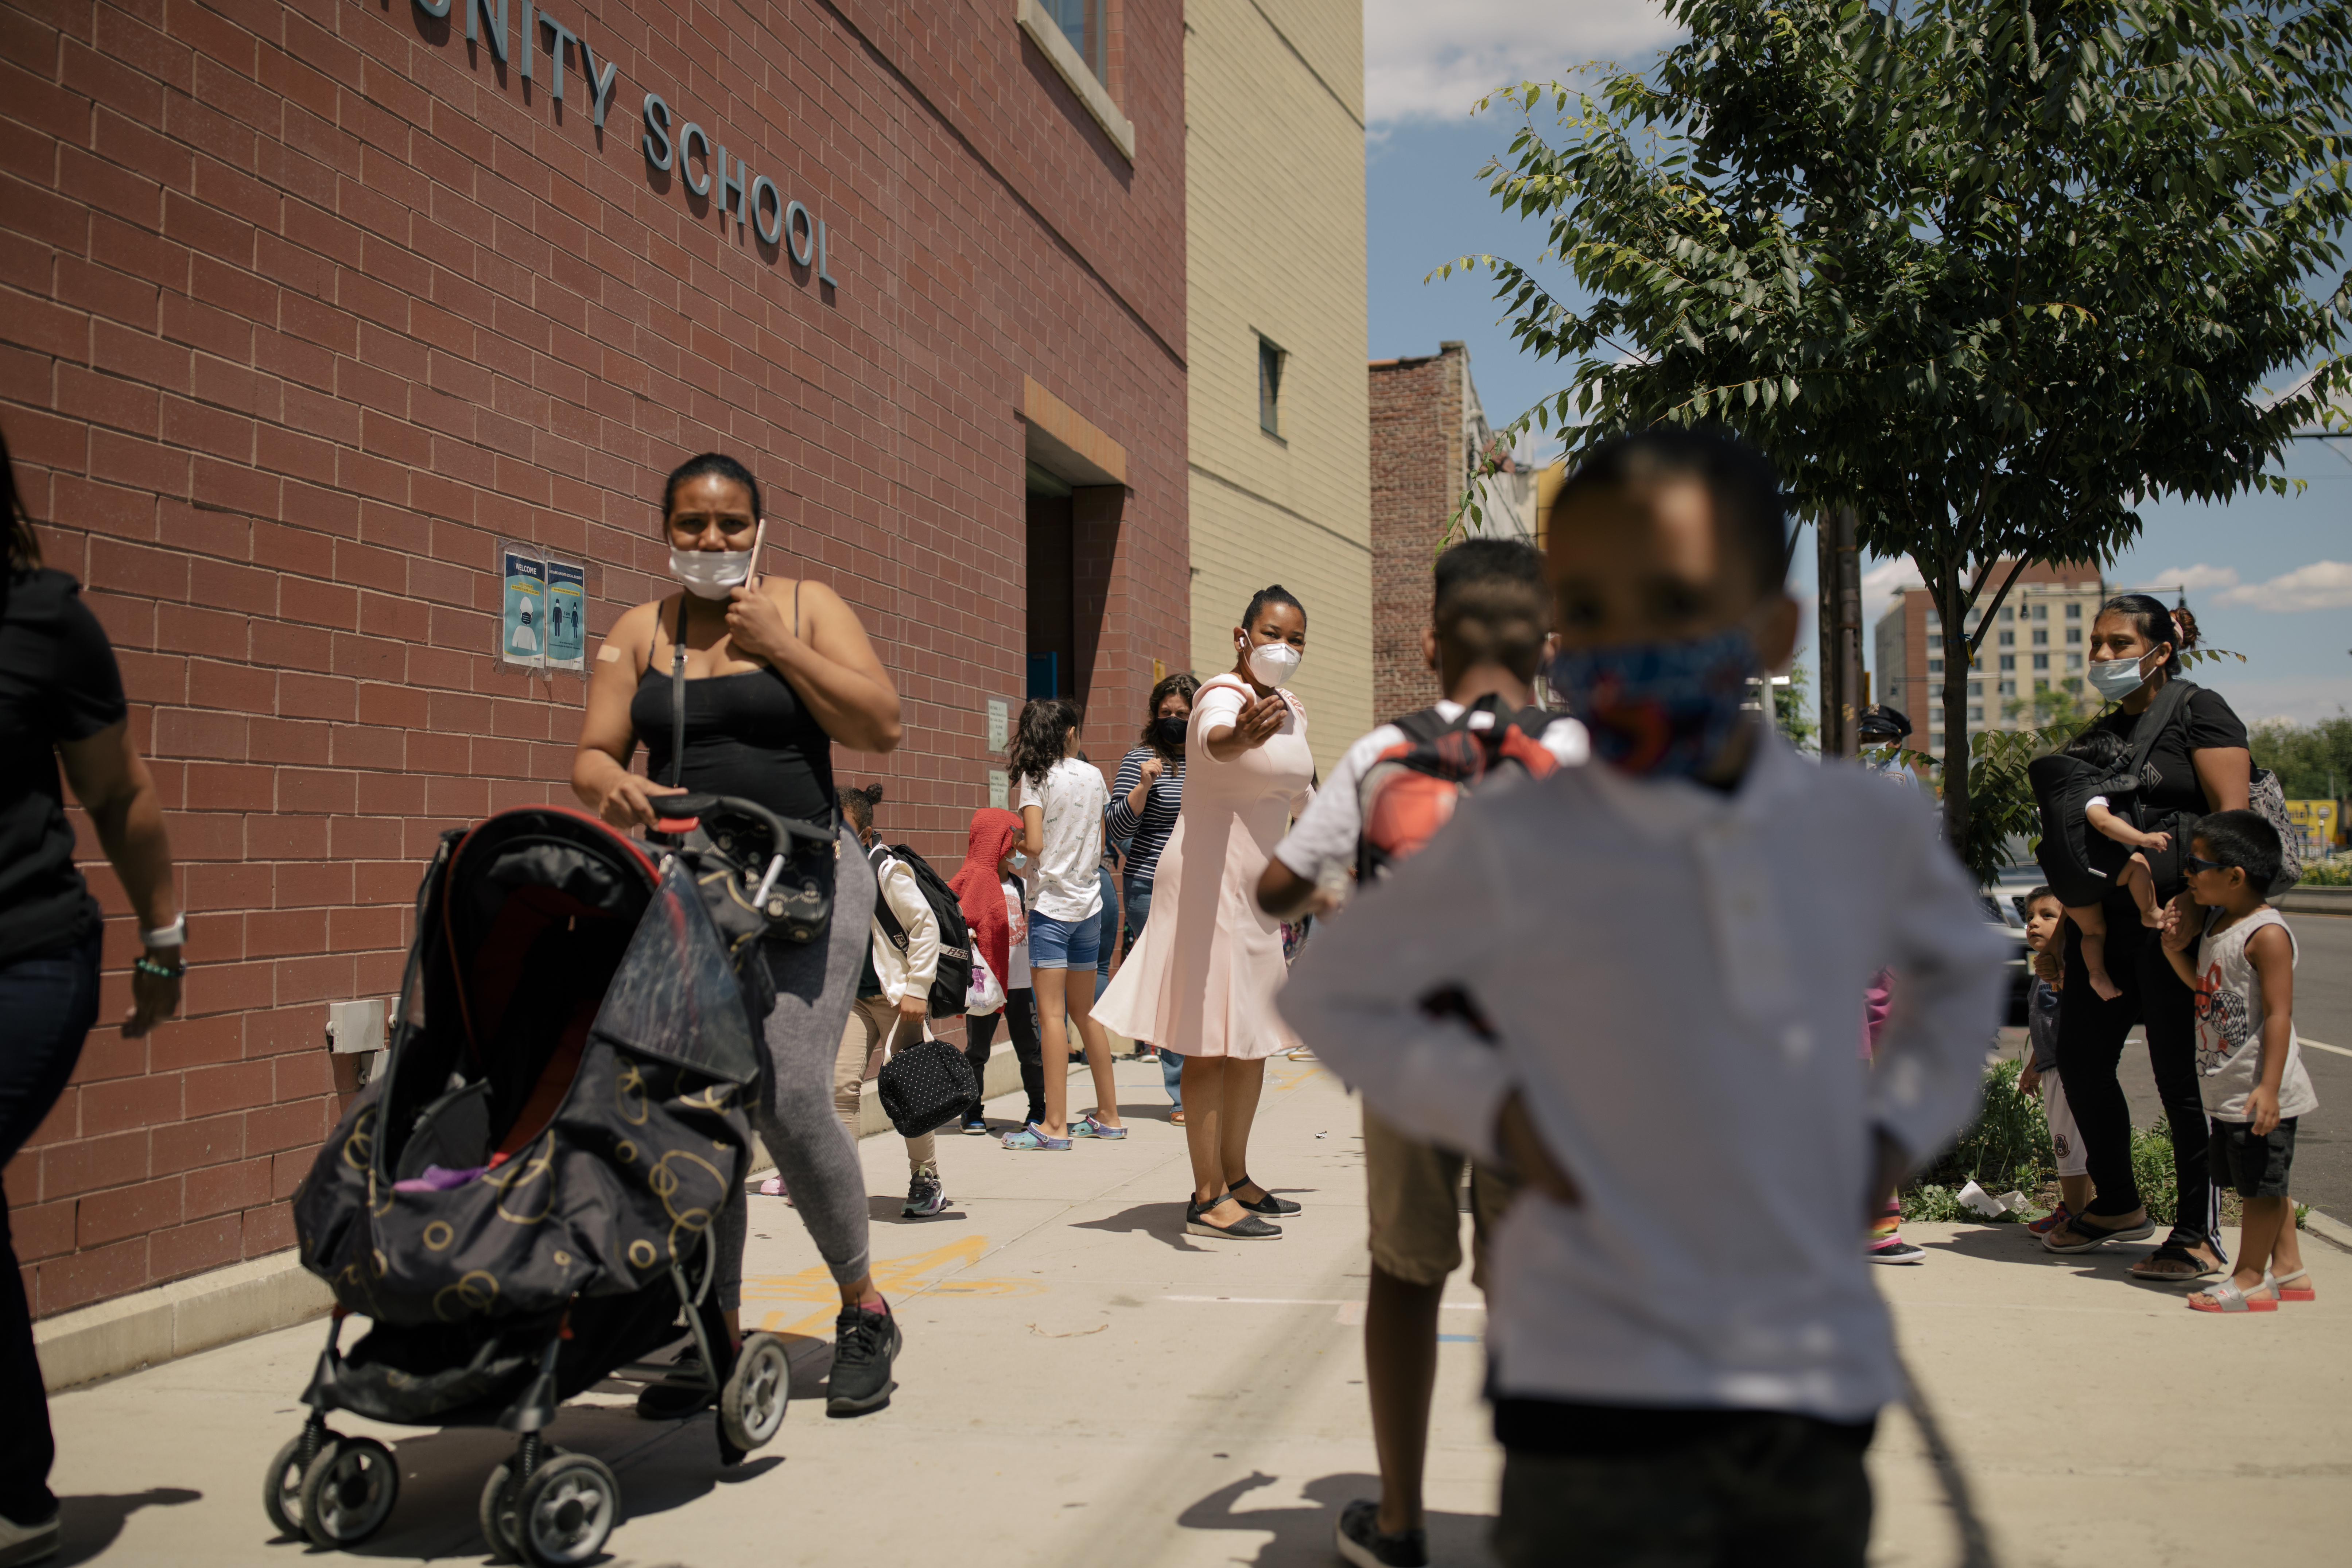 Students walk outside a school in Brooklyn. The school is brick, and a young student in a white shirt is in the foreground.